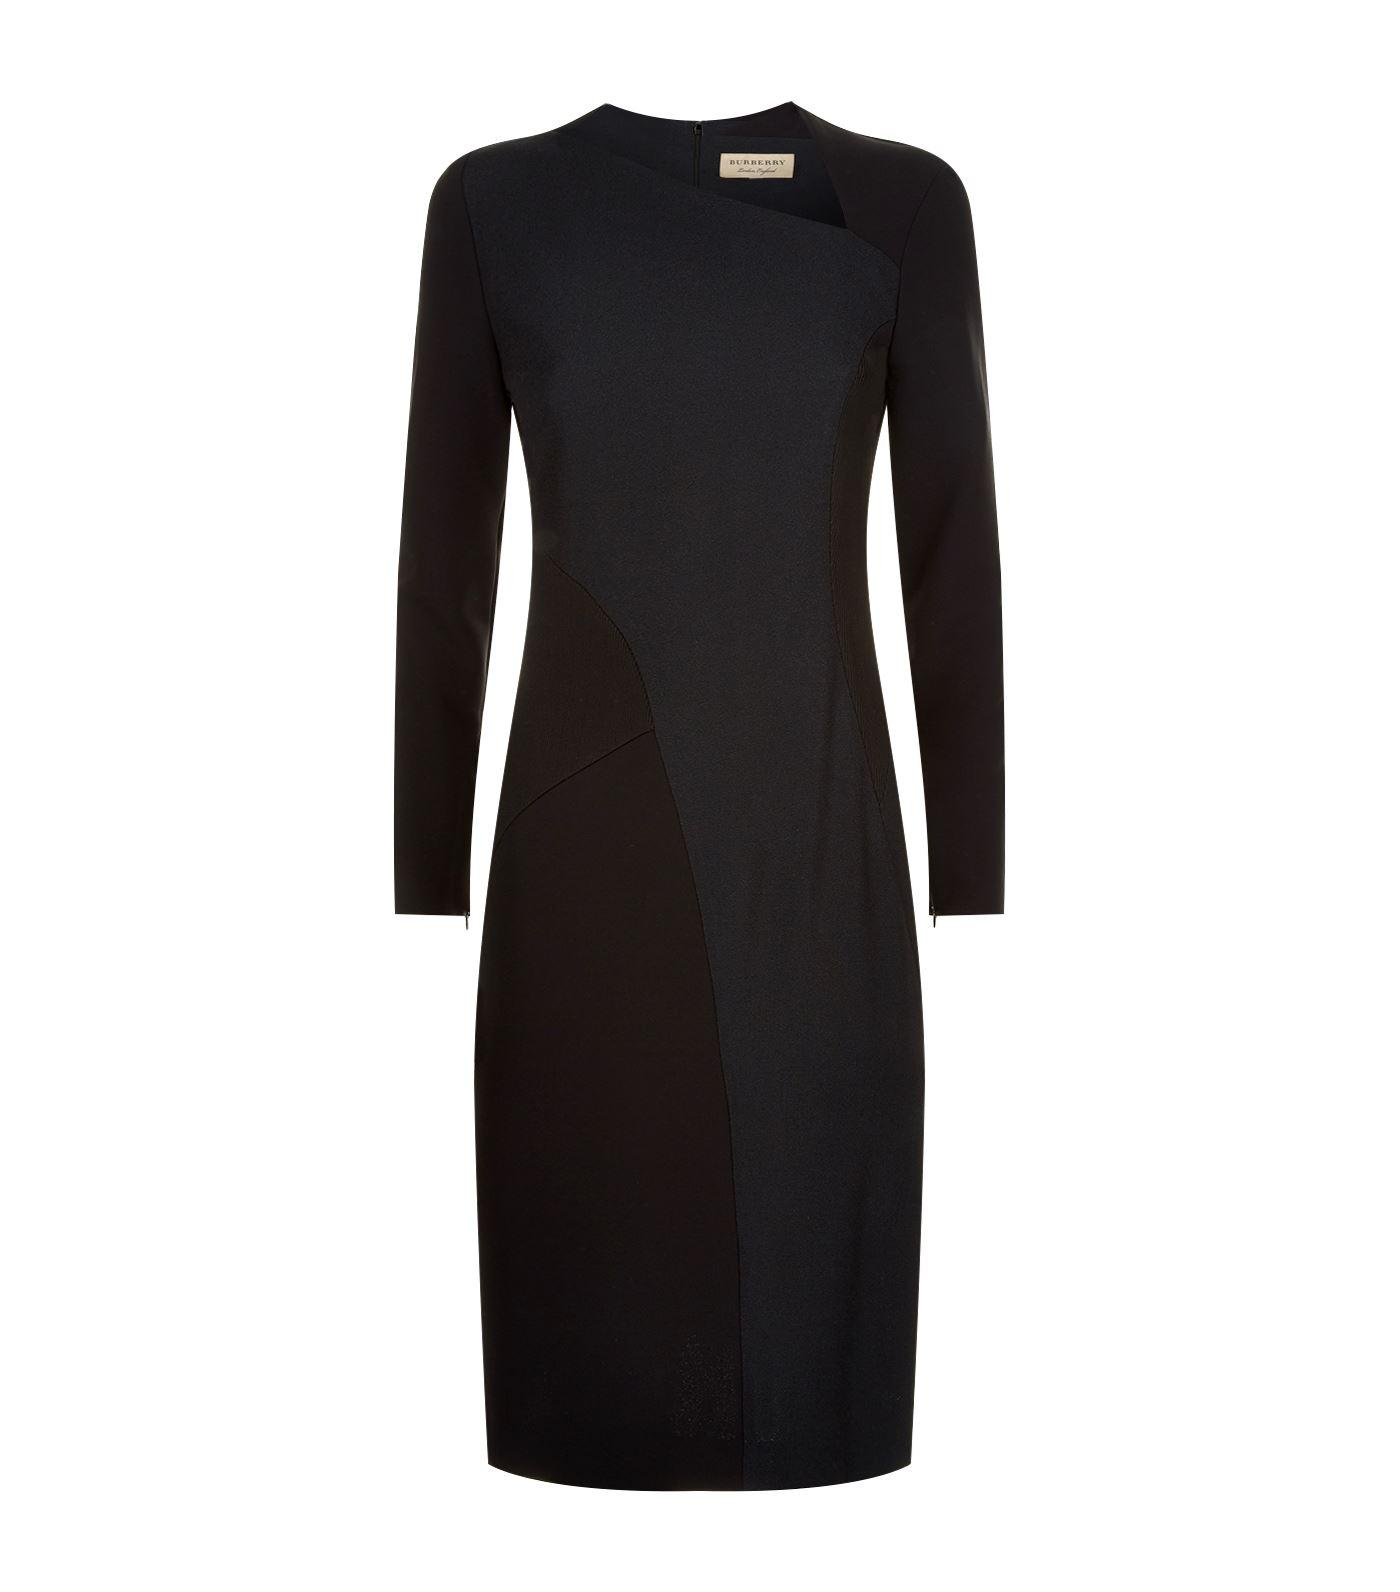 Burberry Fabiana Slash Neck Panel Dress In Black